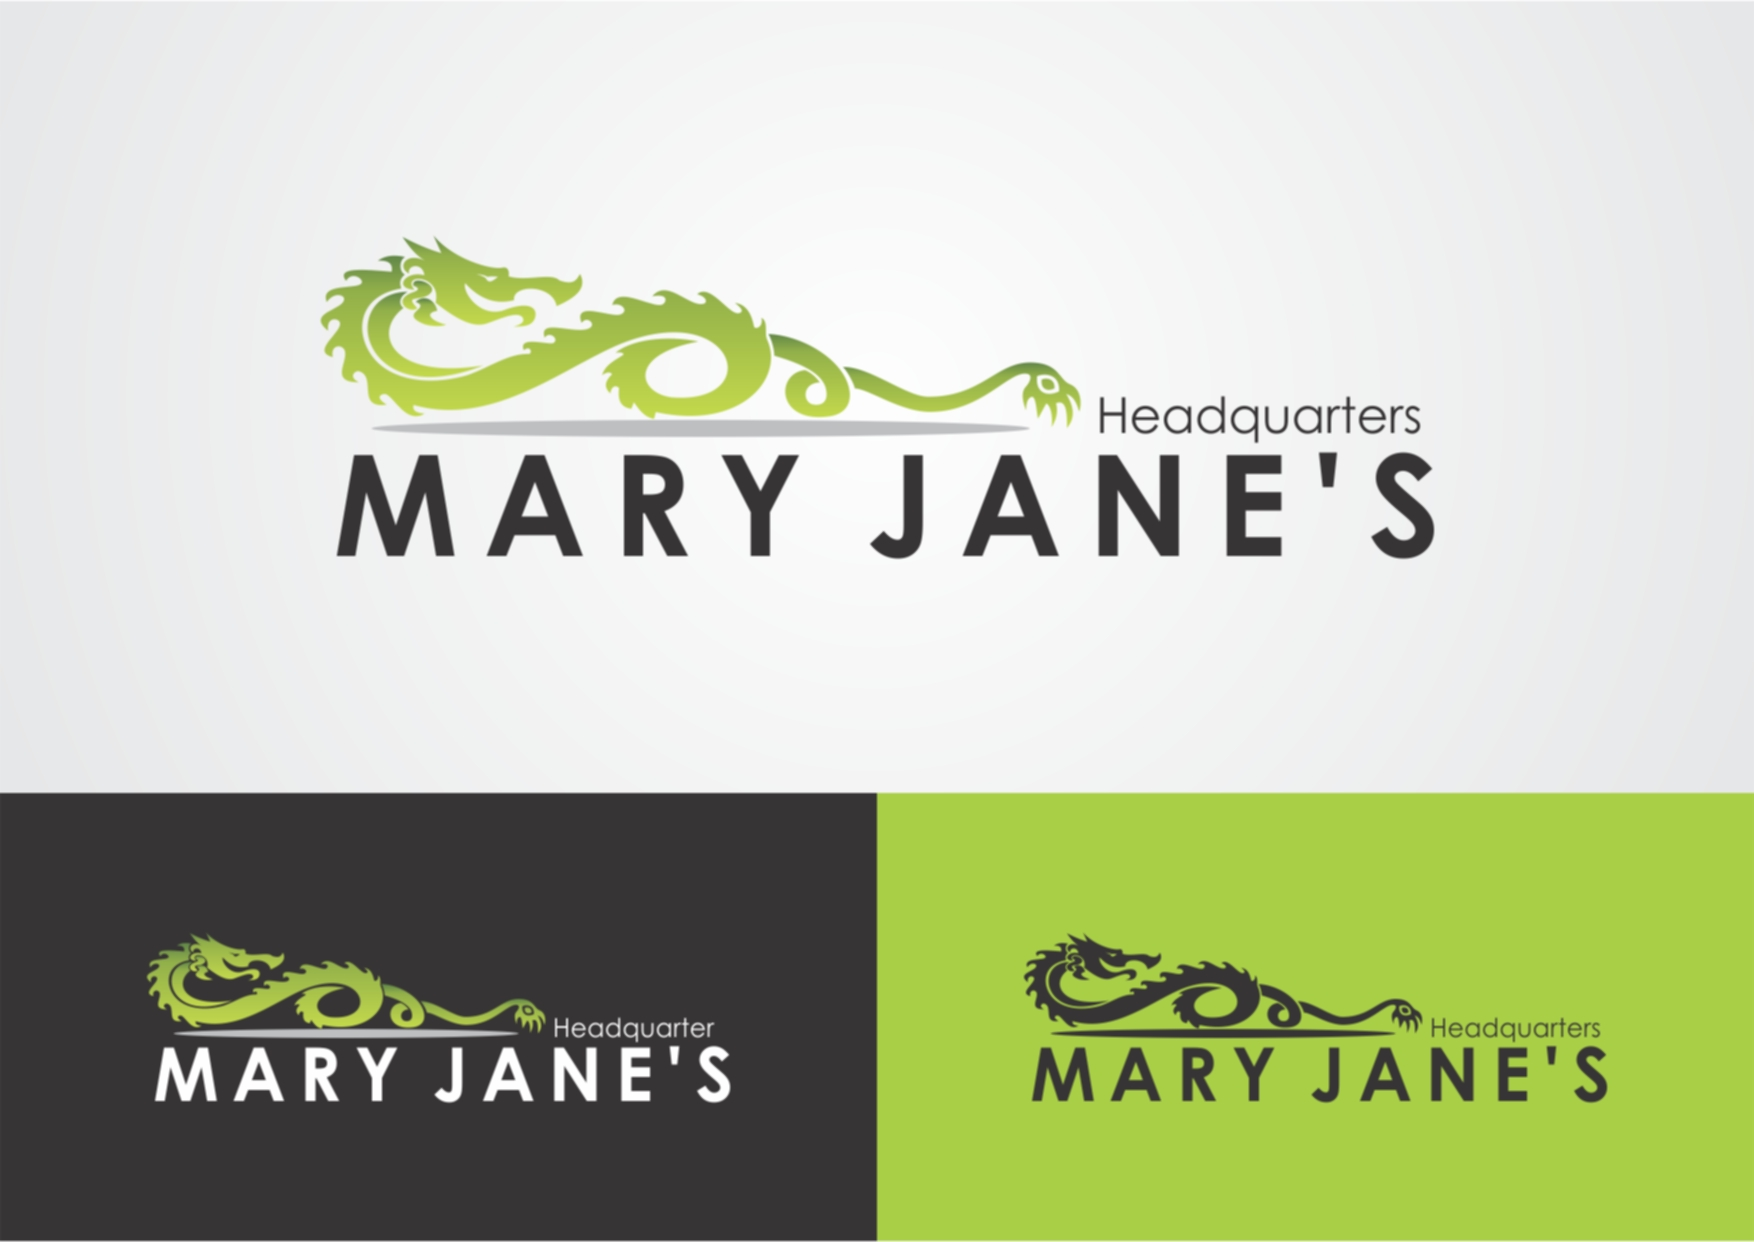 Logo Design by Private User - Entry No. 36 in the Logo Design Contest Mary Jane's Headquarters Logo Design.